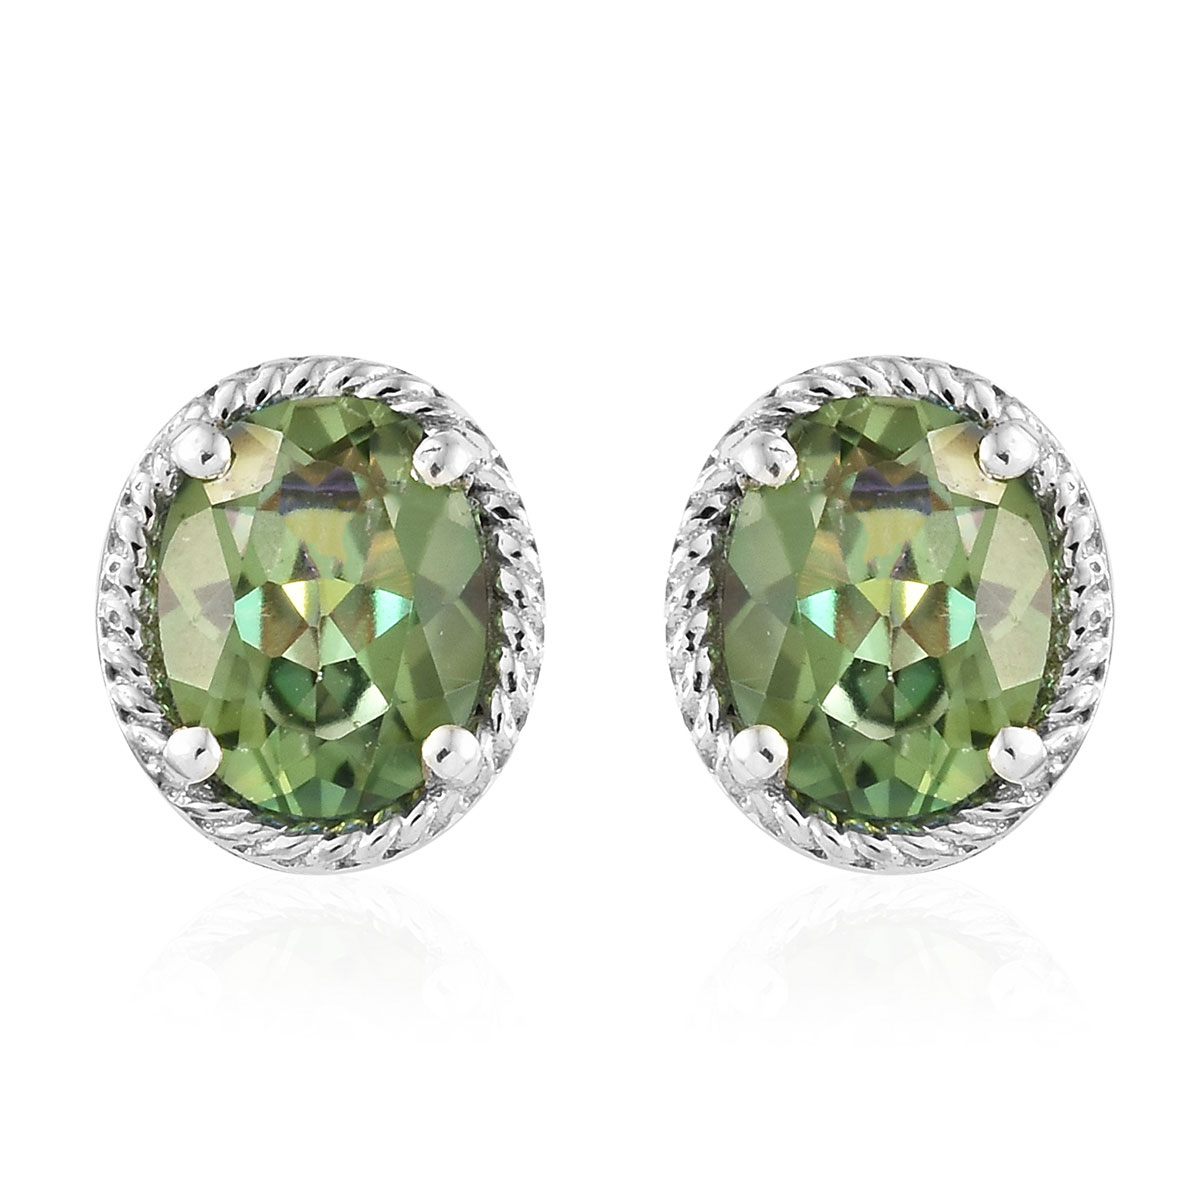 Vivid Posey MYST Platinum Over Sterling Silver Earrings TGW 4.65 cts.